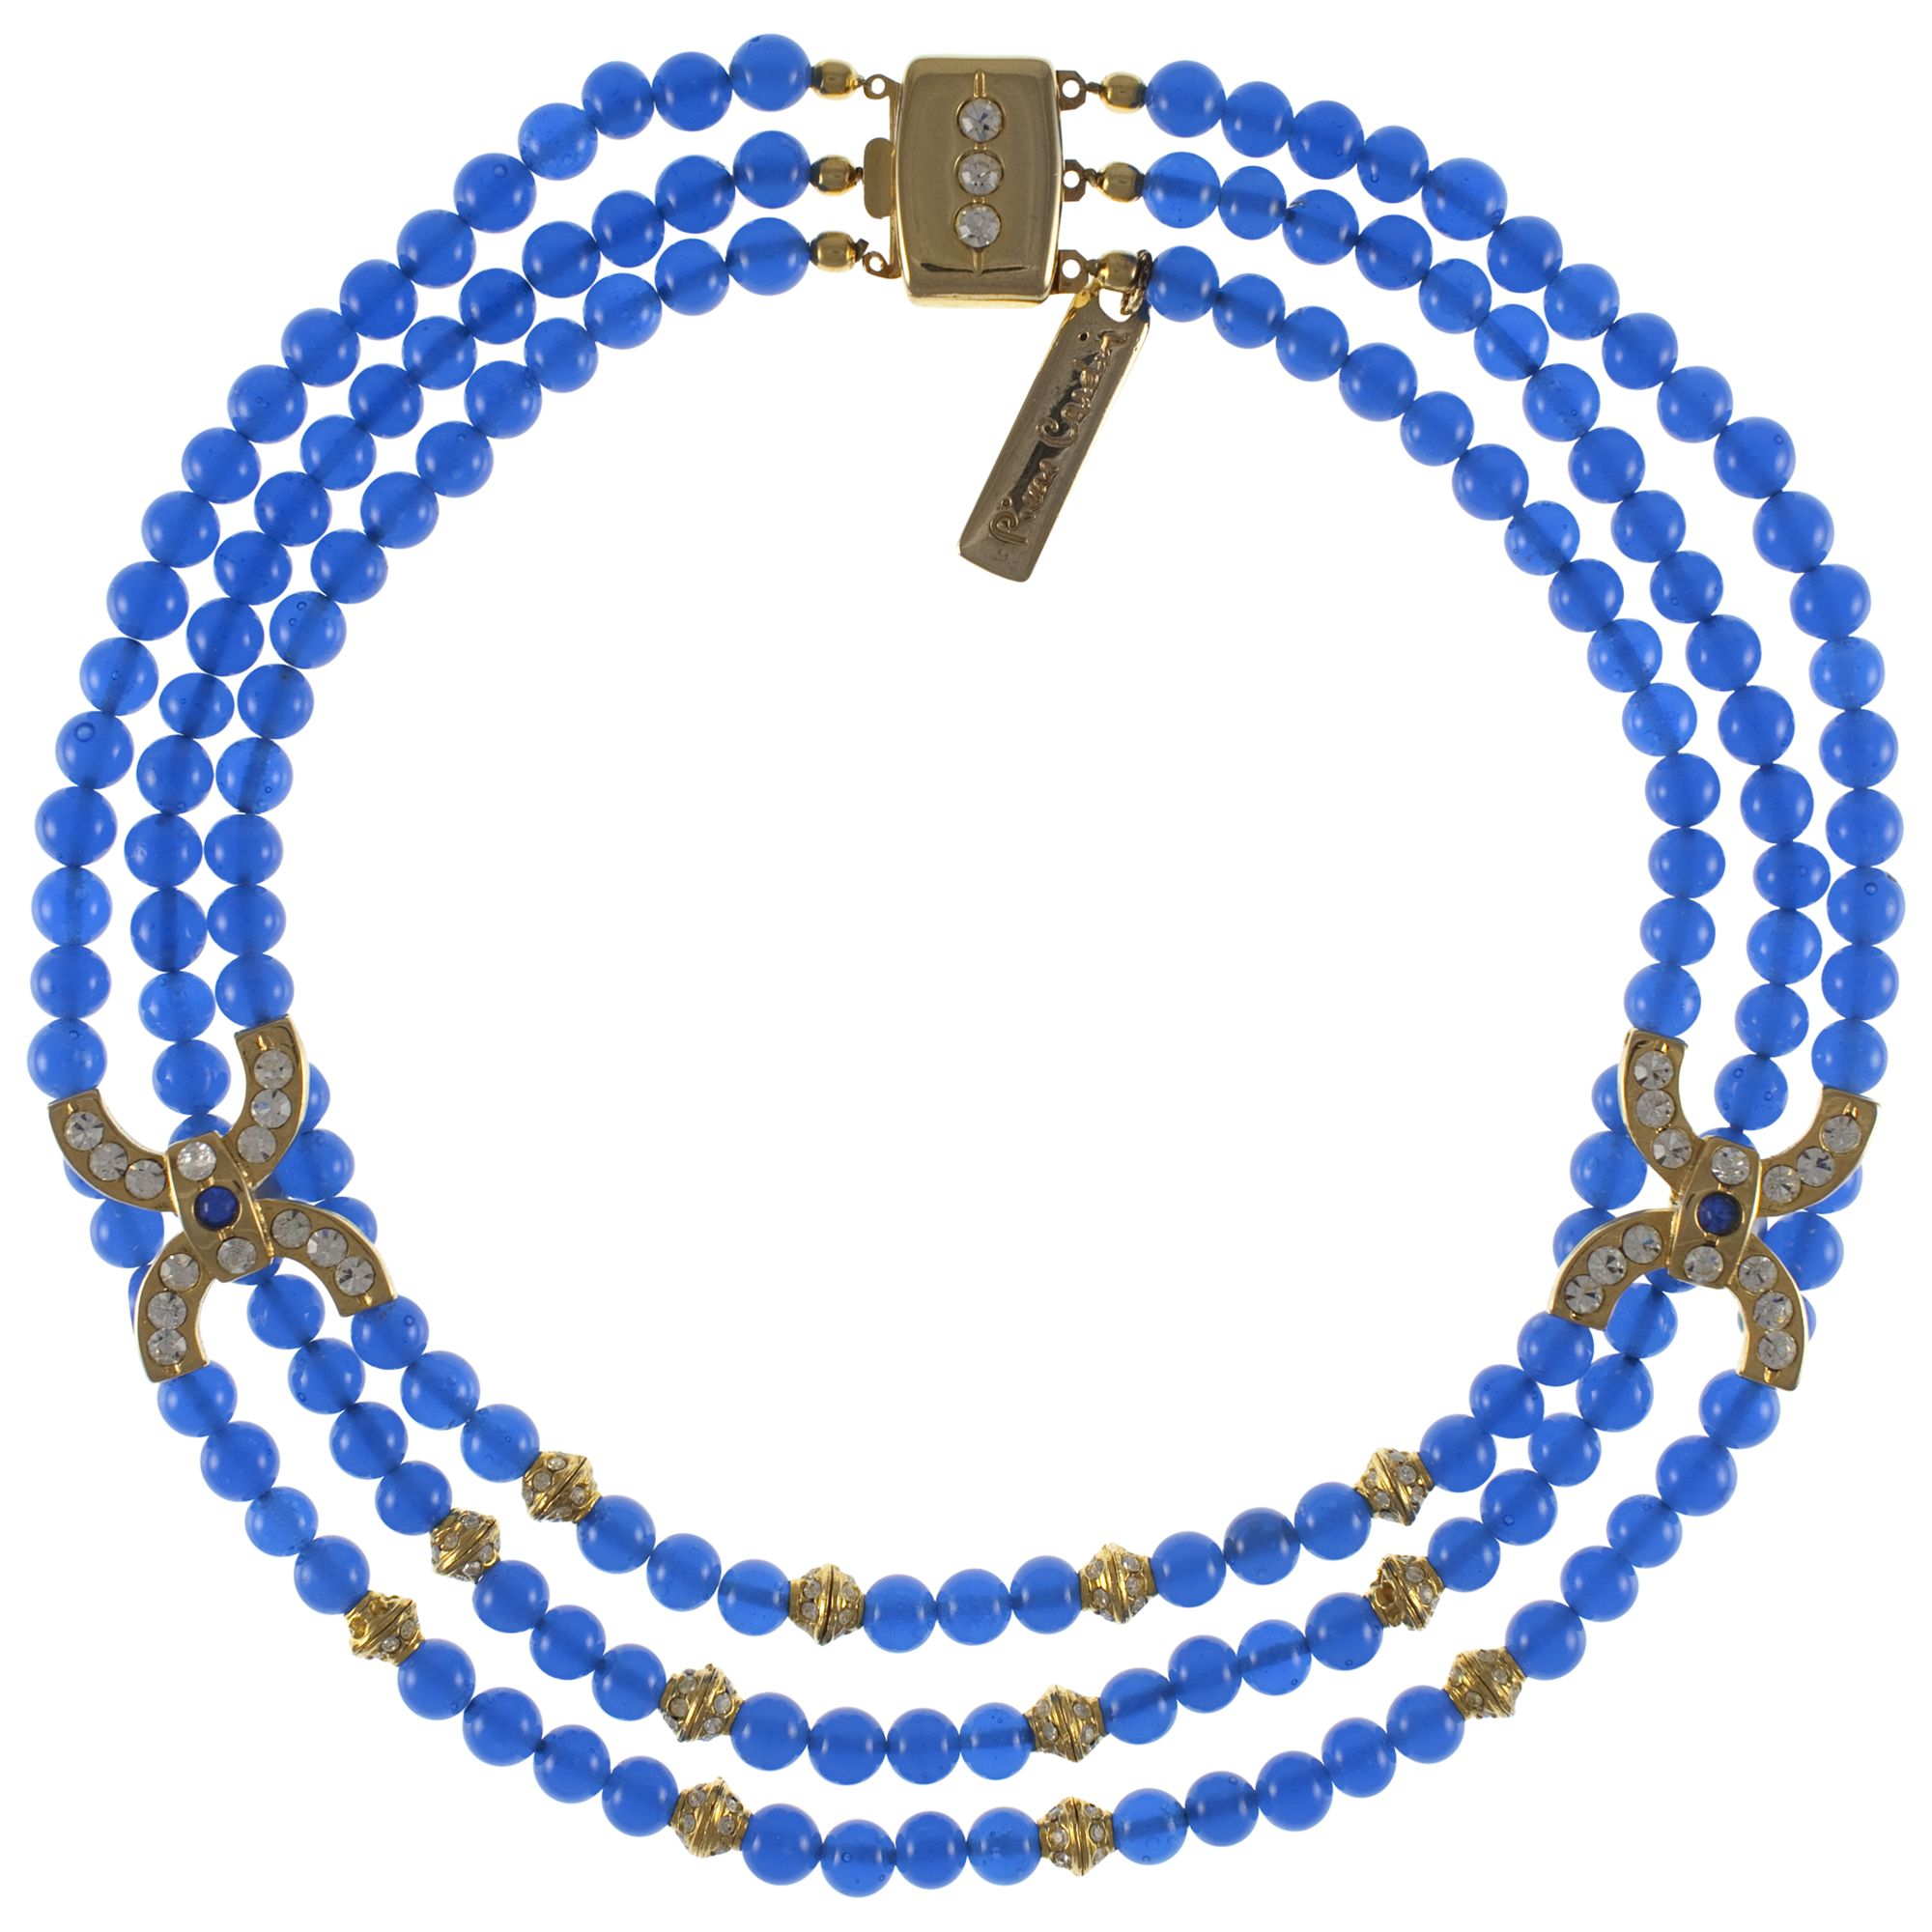 Eclectica 1970s Pierre Cardin Triple Row Bead Necklace, Blue / Gold